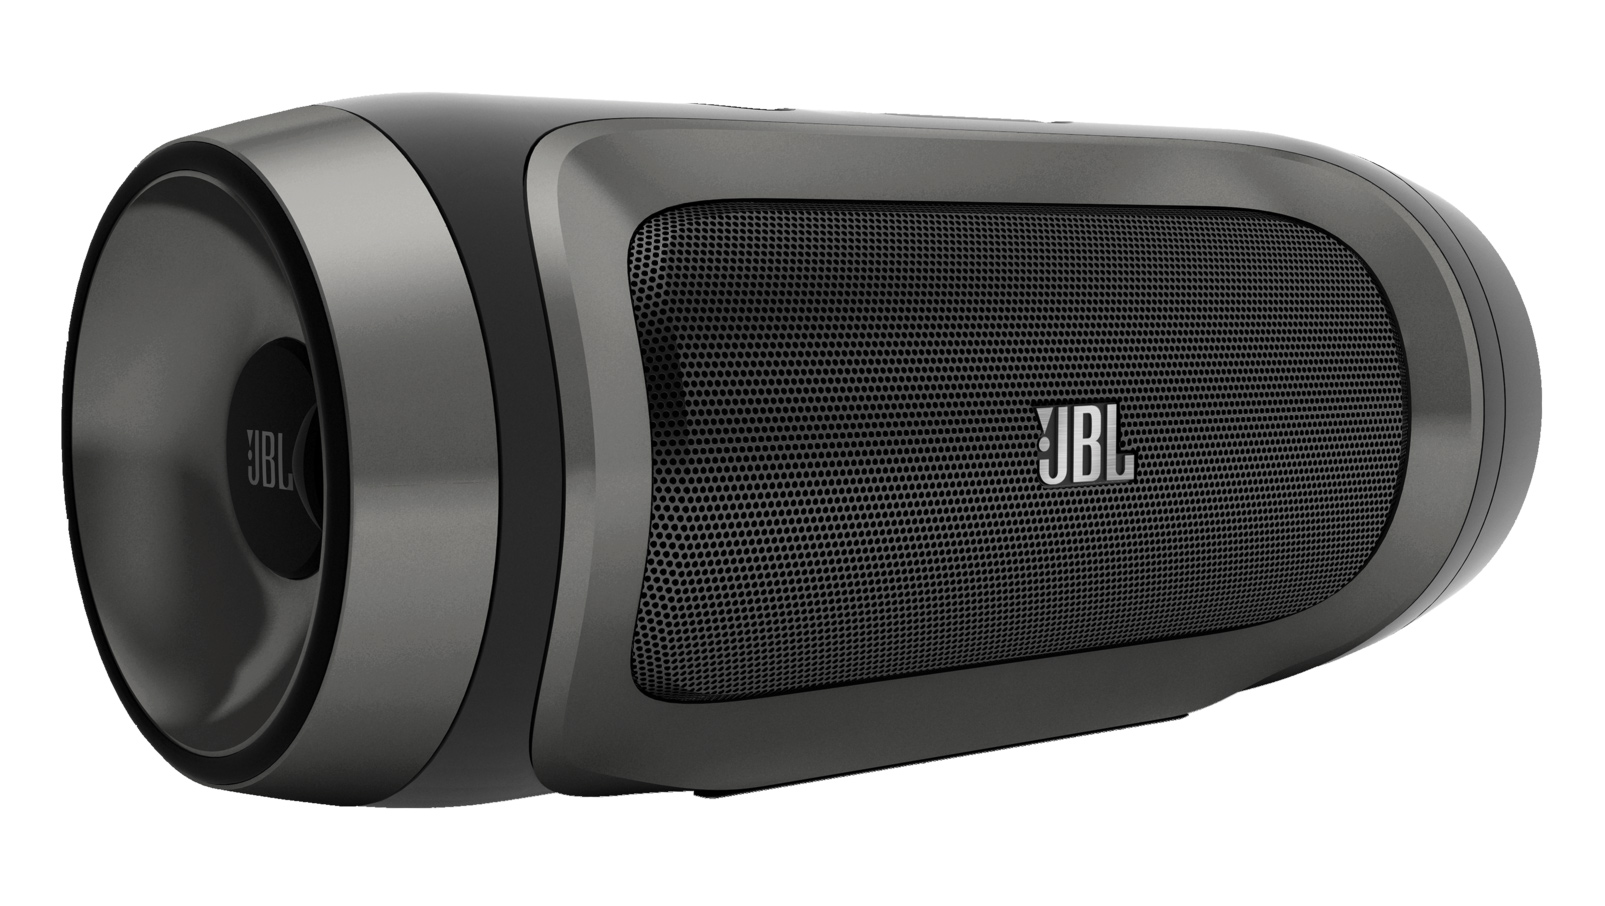 jbl mini speakers flipkart